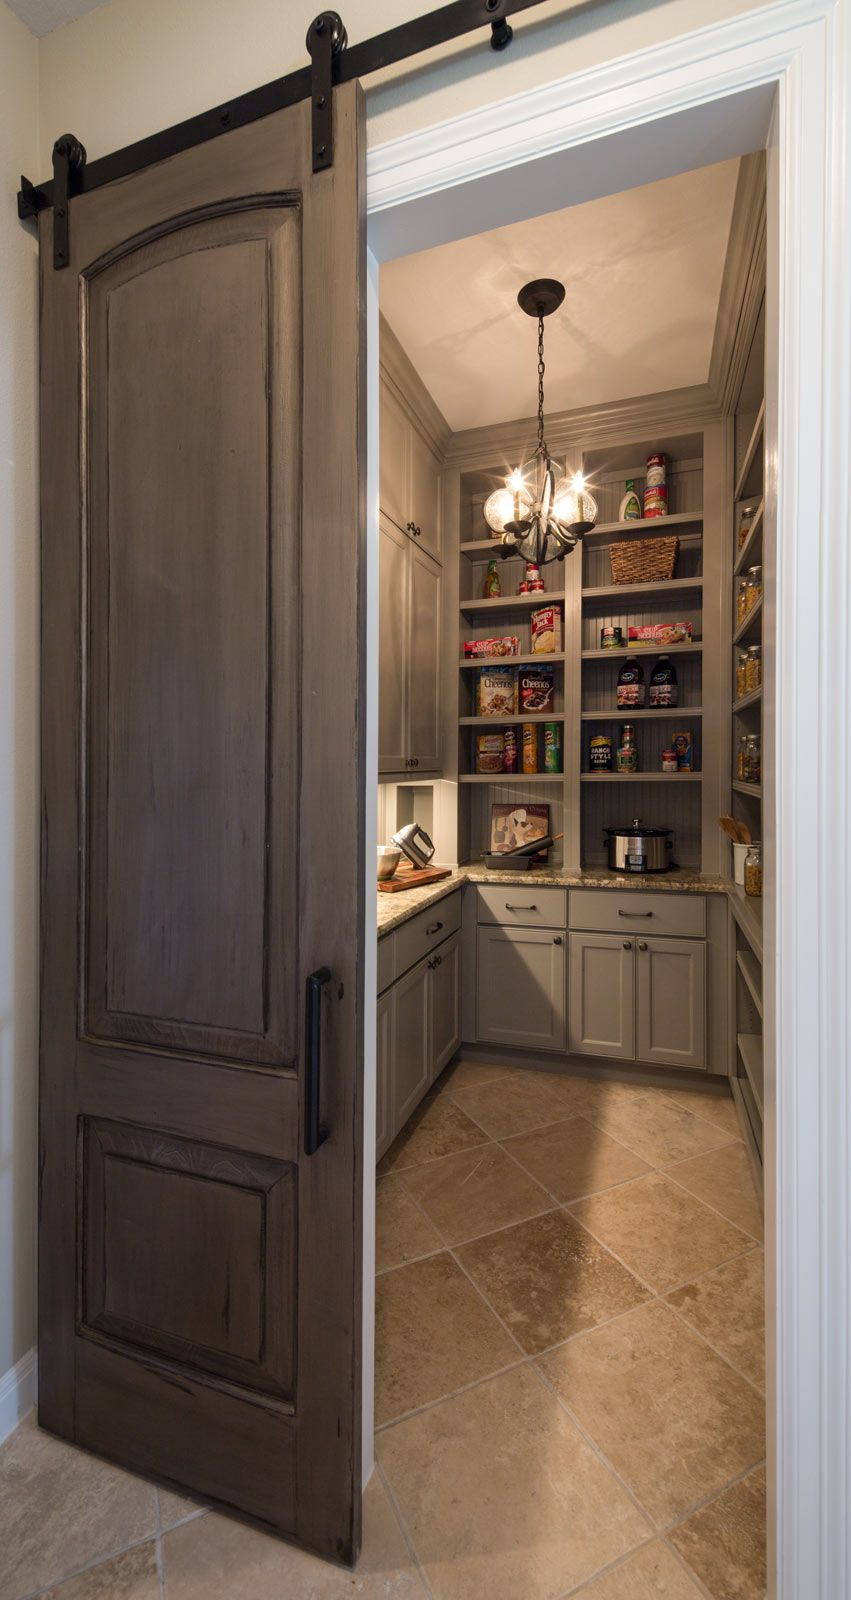 Pantry Spacious and organized pantry area with